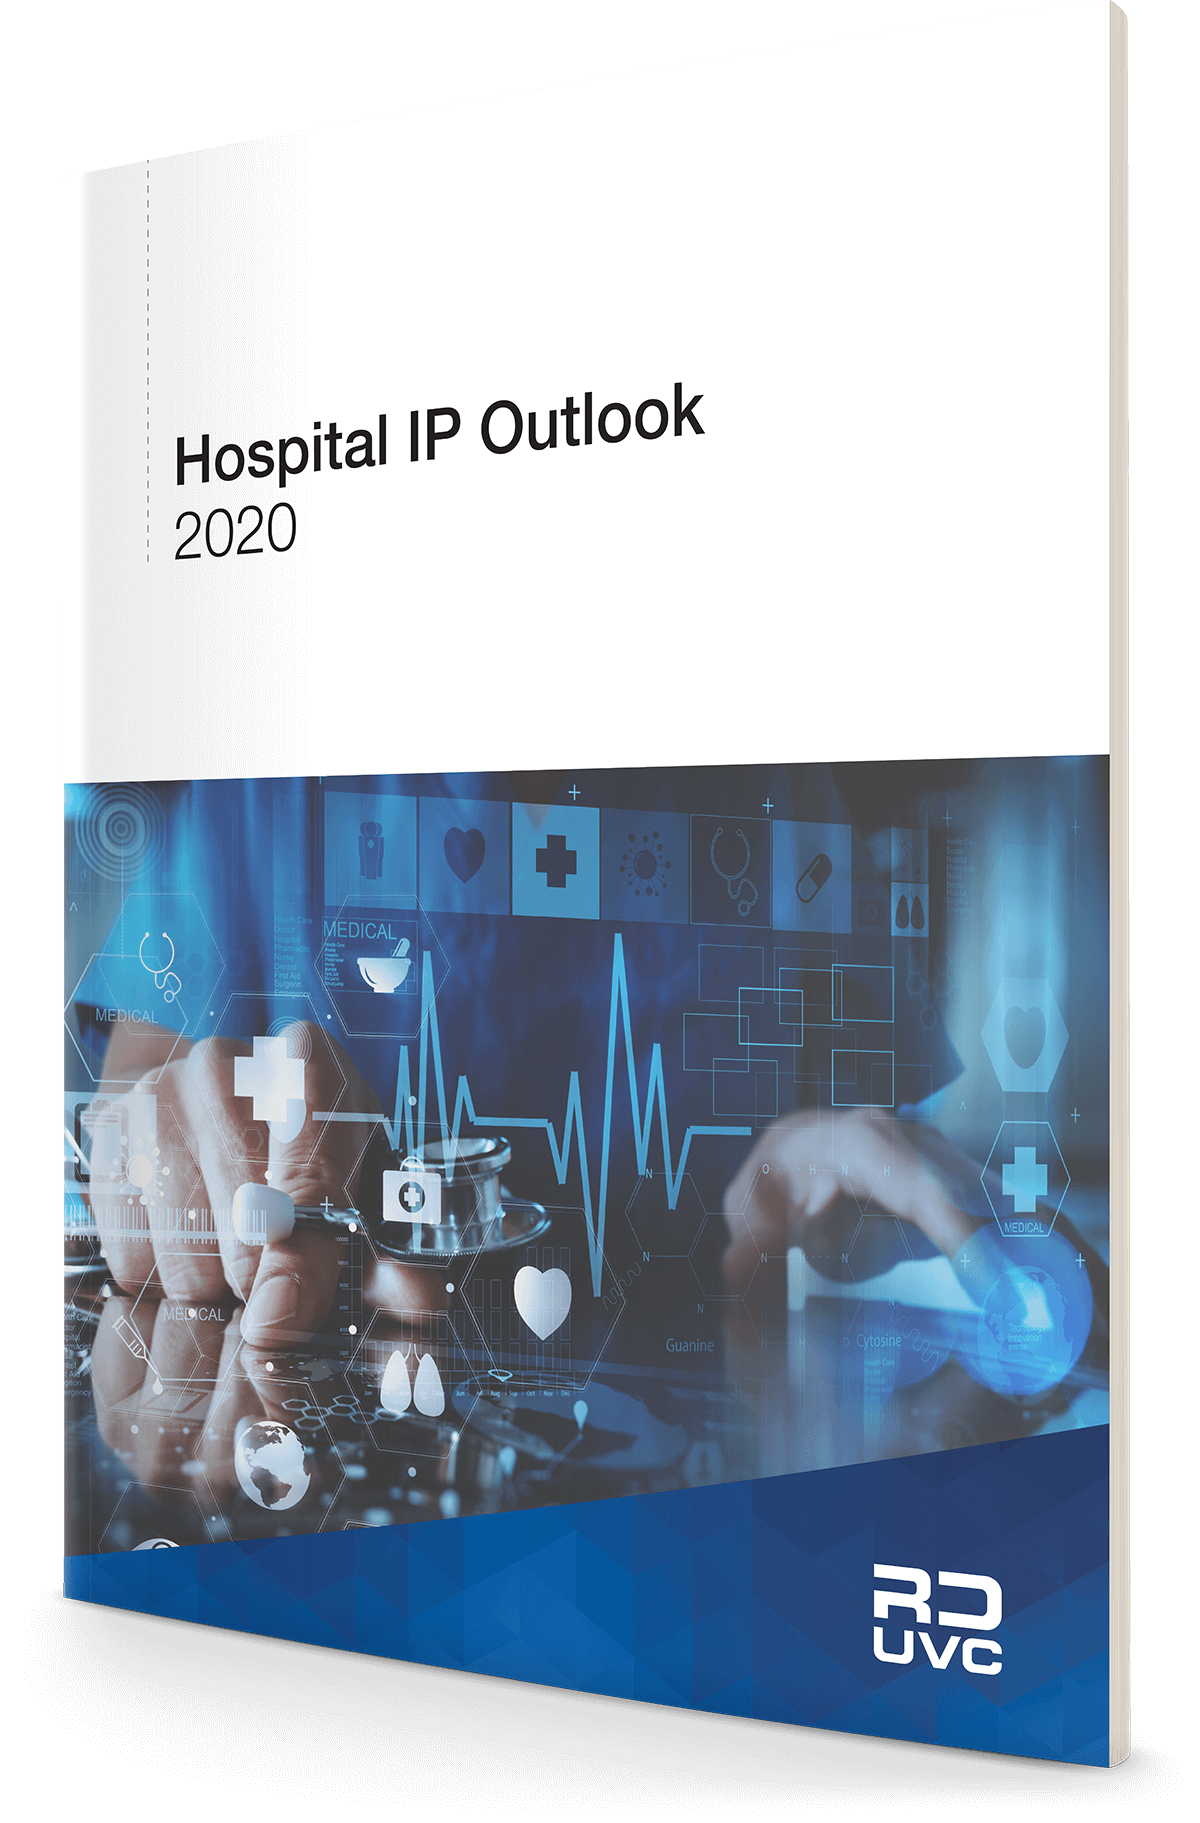 Hospital IP Outlook 2020